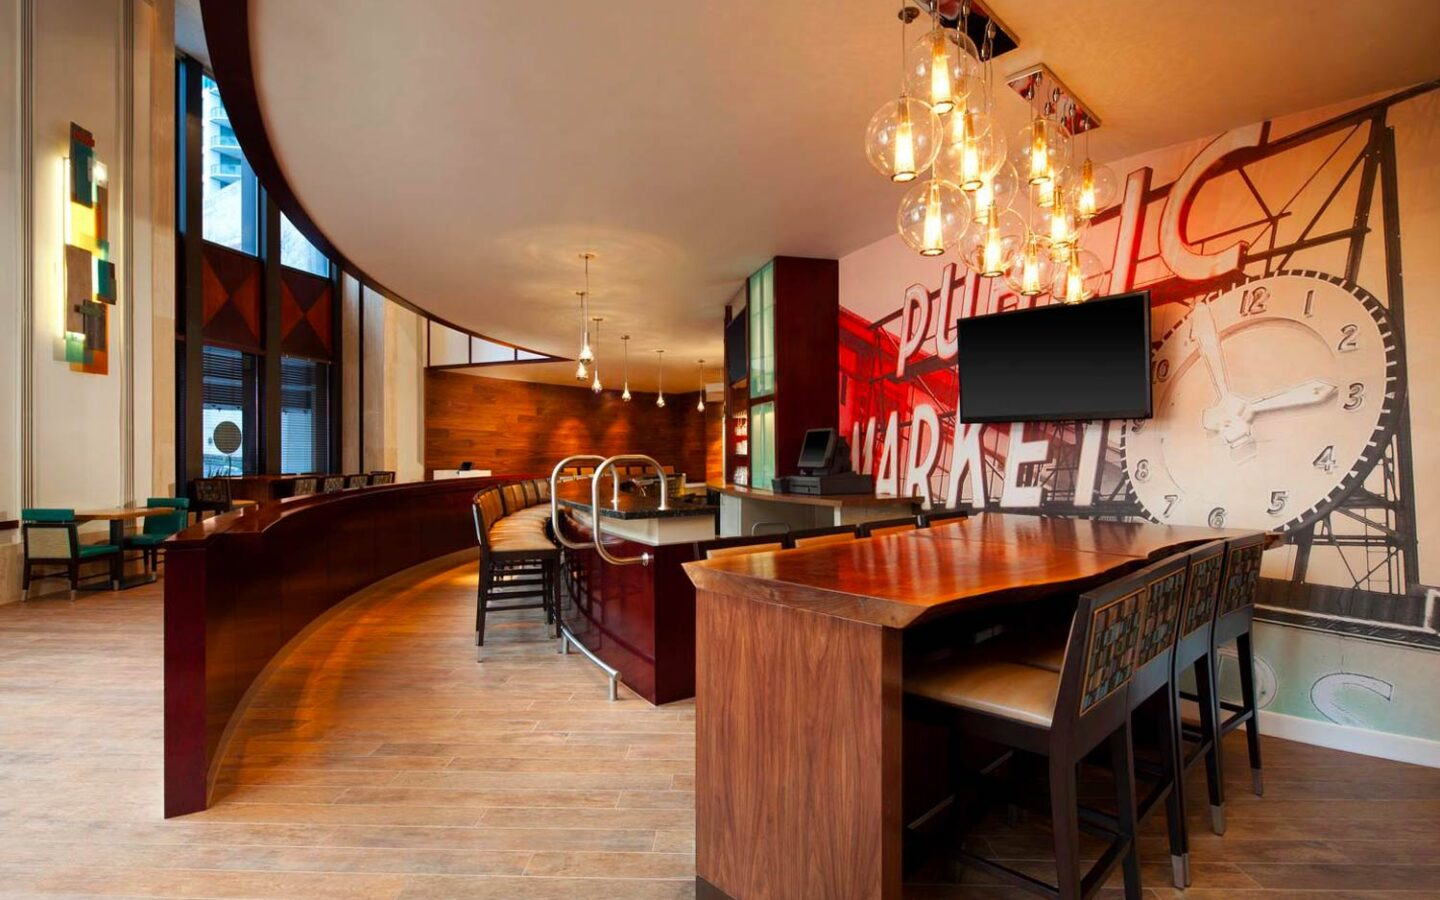 wooden bar area with modern artwork on the wall and circular light fixtures